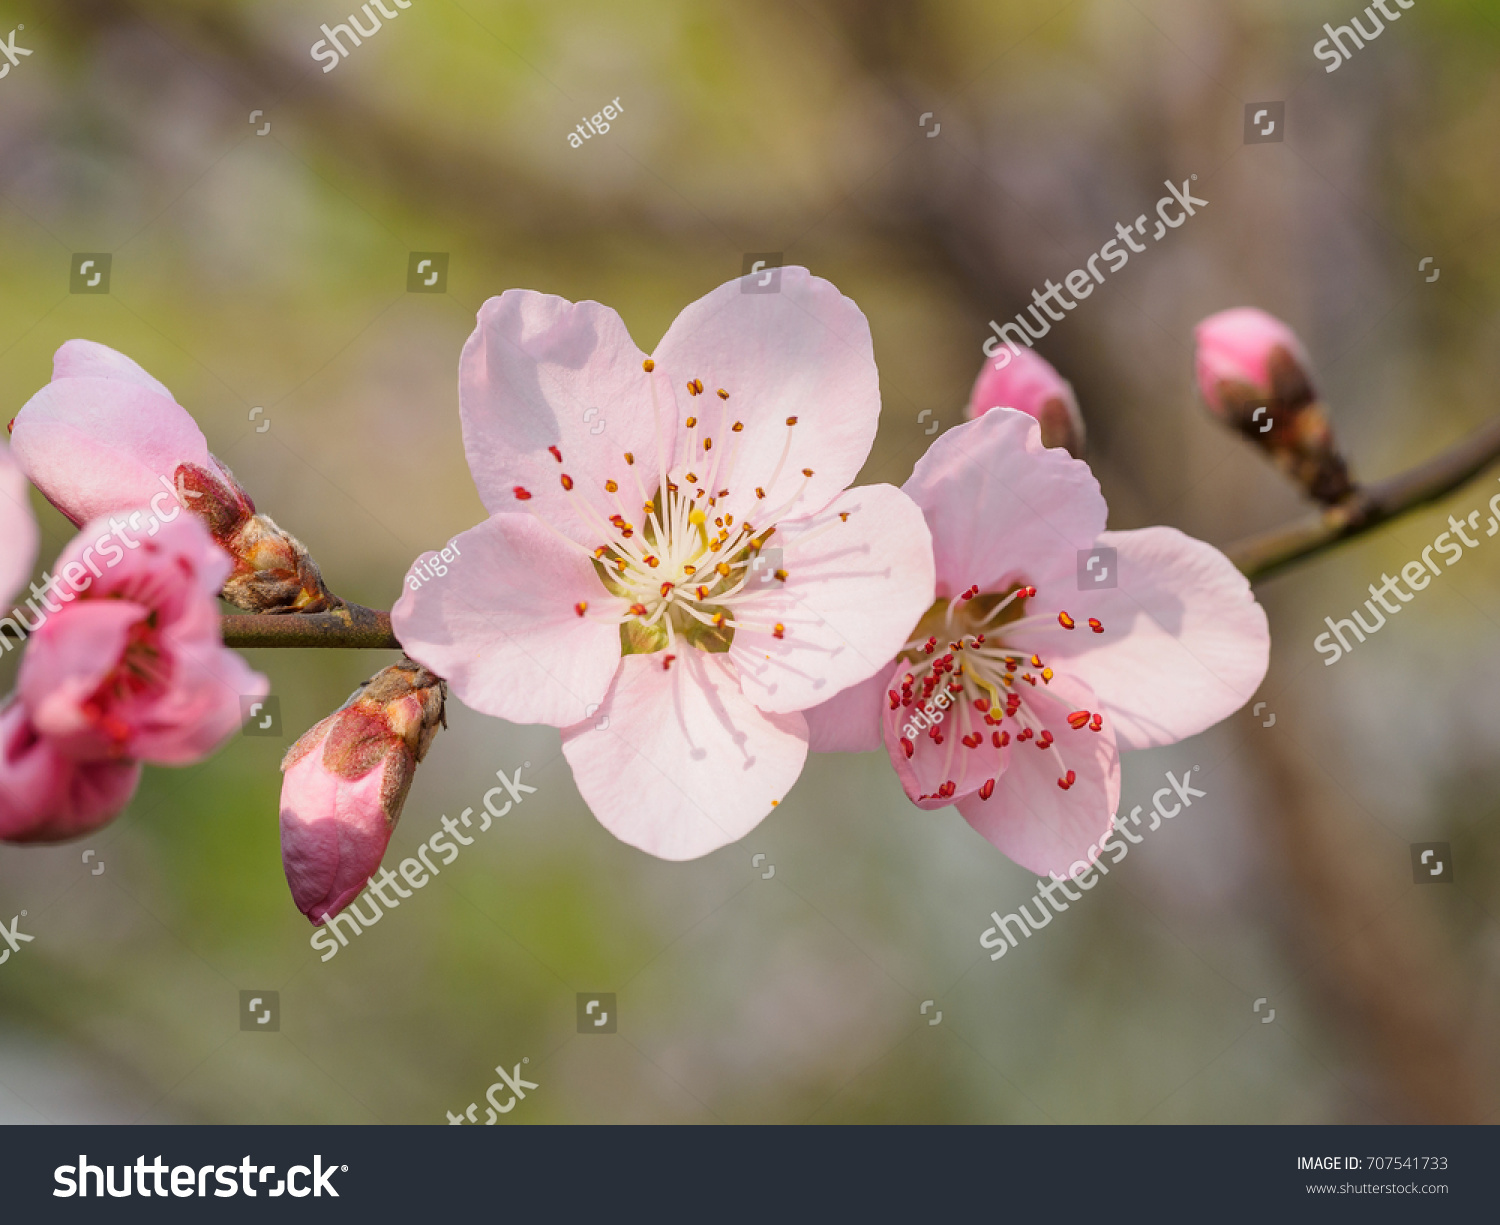 Spring Flowers Series Macro Of Beautiful Peach Blossoms With Nature Blurred Background Focused On